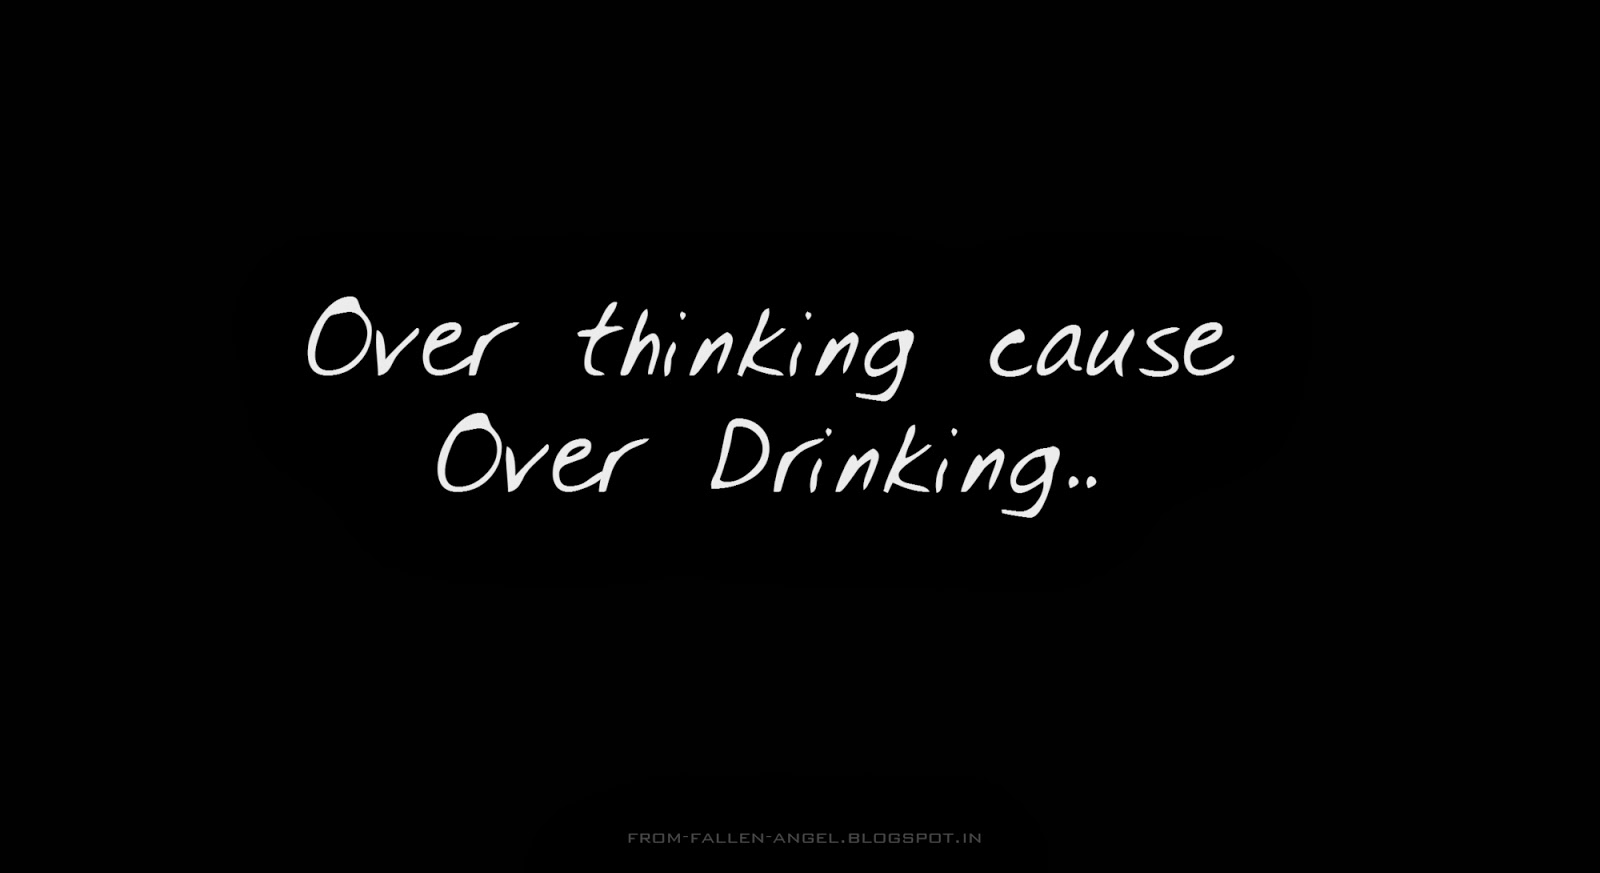 Over thinking cause Over Drinking